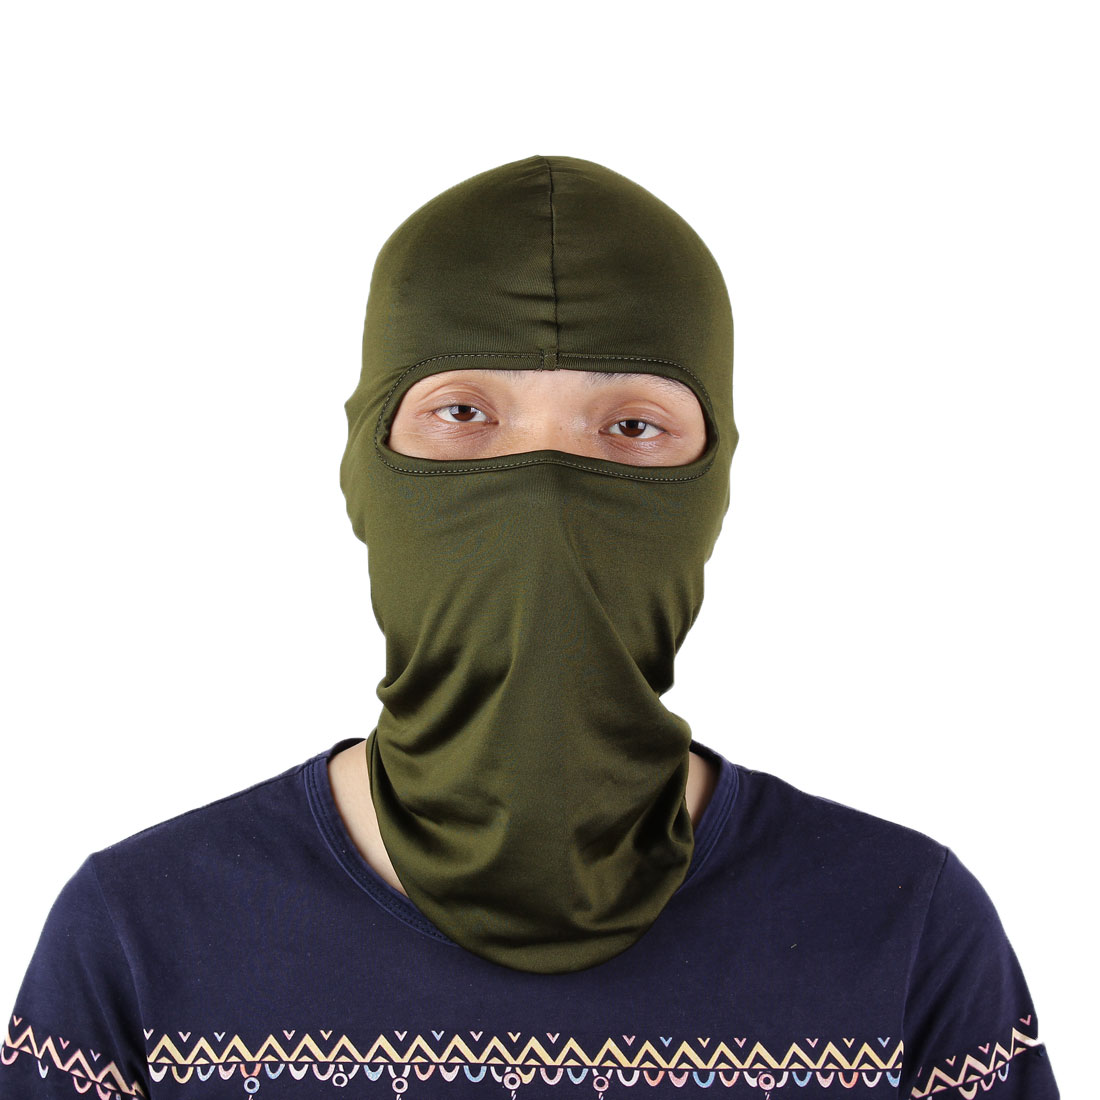 Outdoor Motorcycle Cycling Full Face Mask Neck Protecting Balaclava Hood Army Green